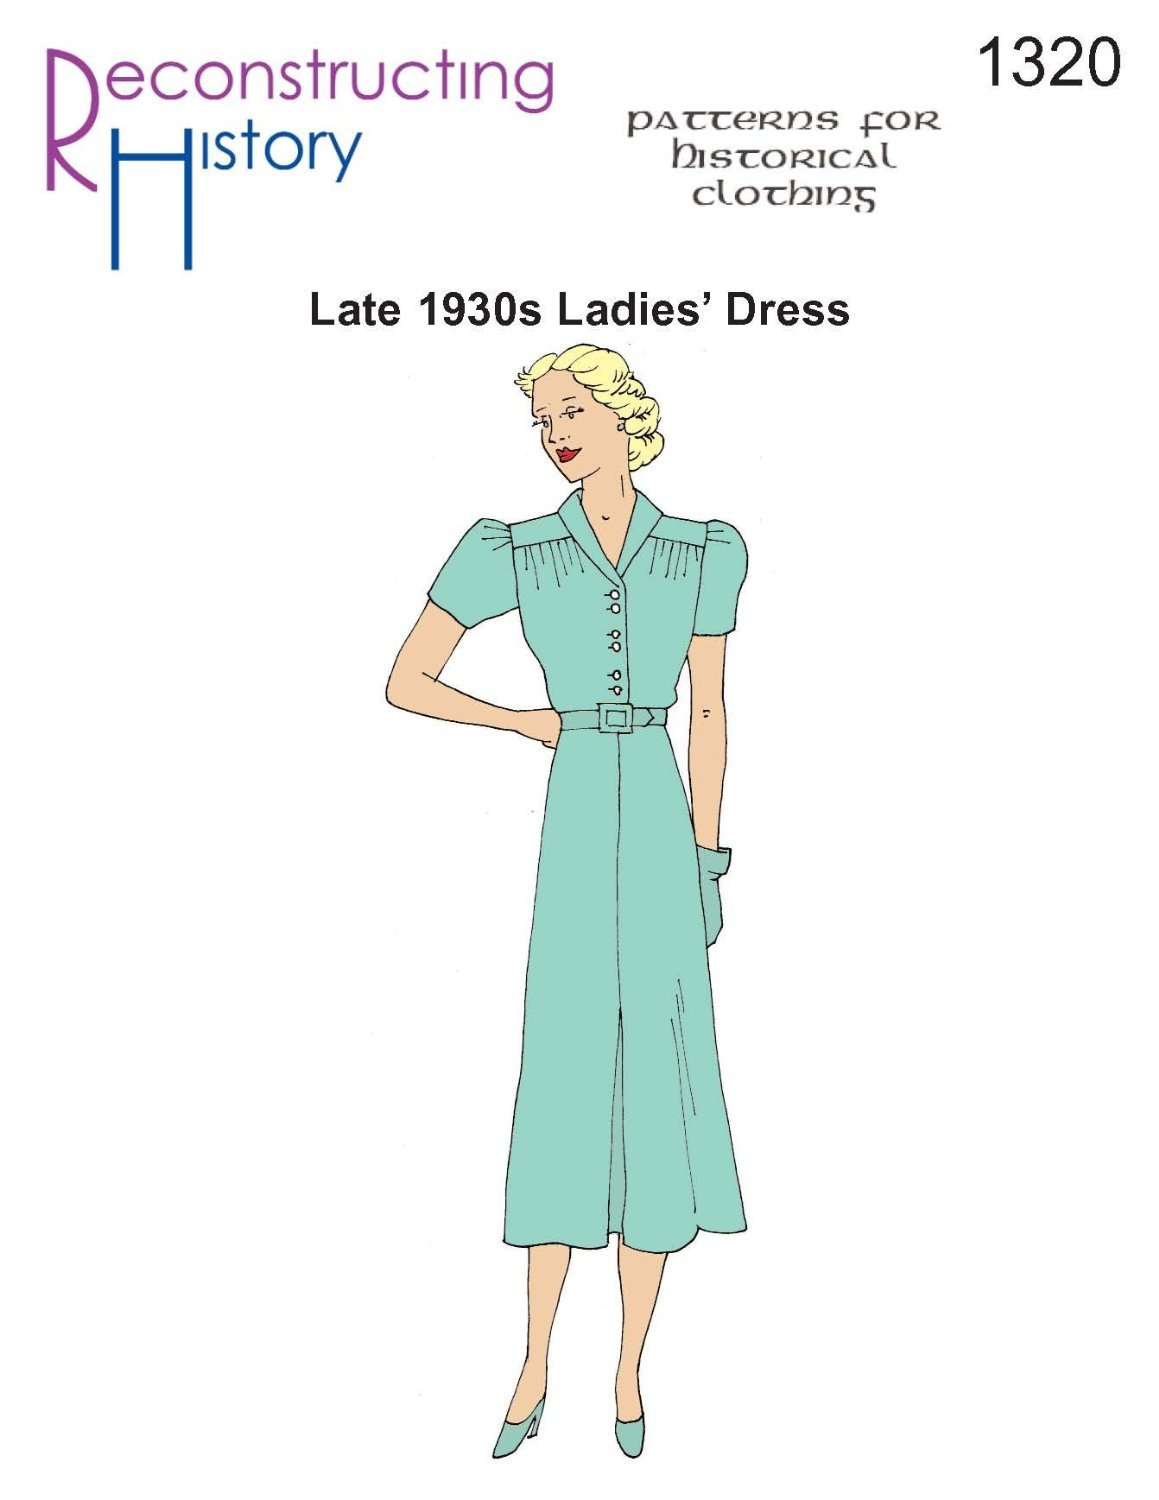 Late 1930s Ladies' Dress Pattern by Reconstructing History   B008165HUS